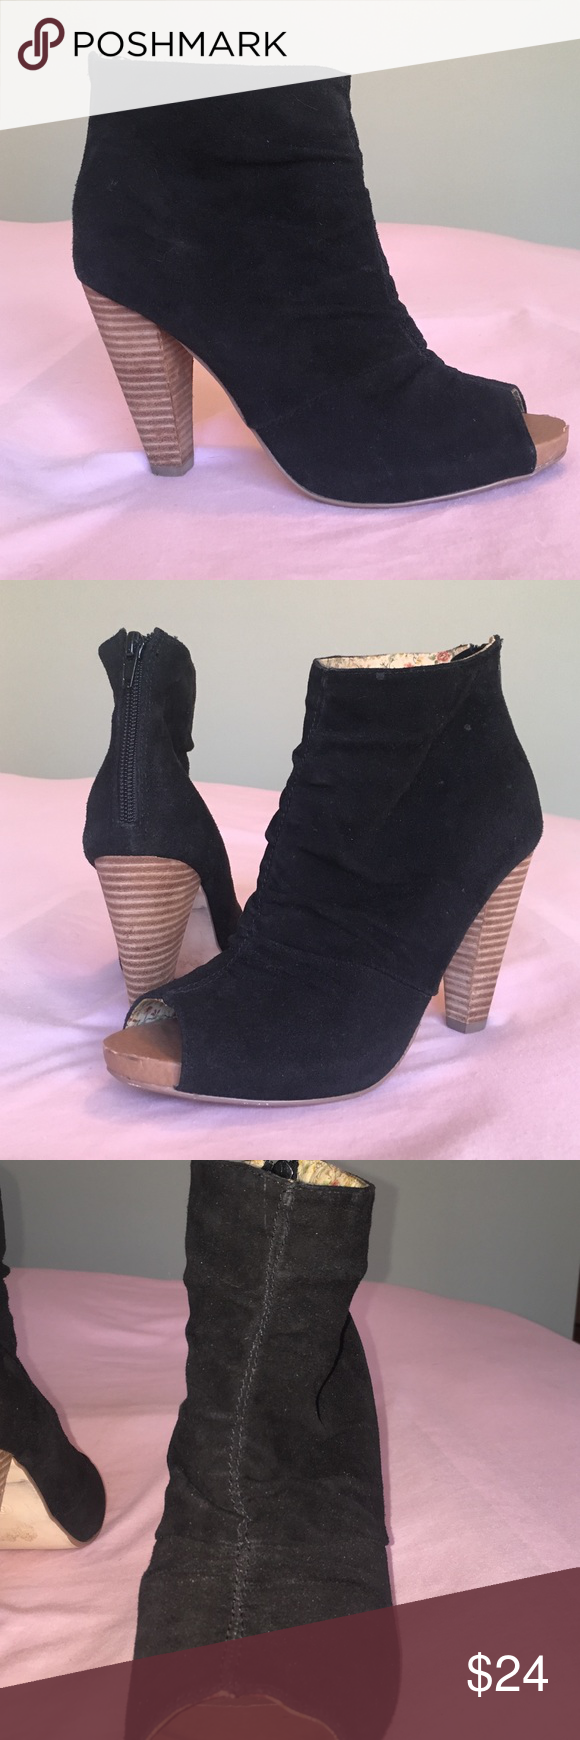 Suede peep toe ankle booties. Seychelles Beautiful black ruched suede ankle booties. Stacked heel. Back zipper closure. Seychelles Shoes Ankle Boots & Booties